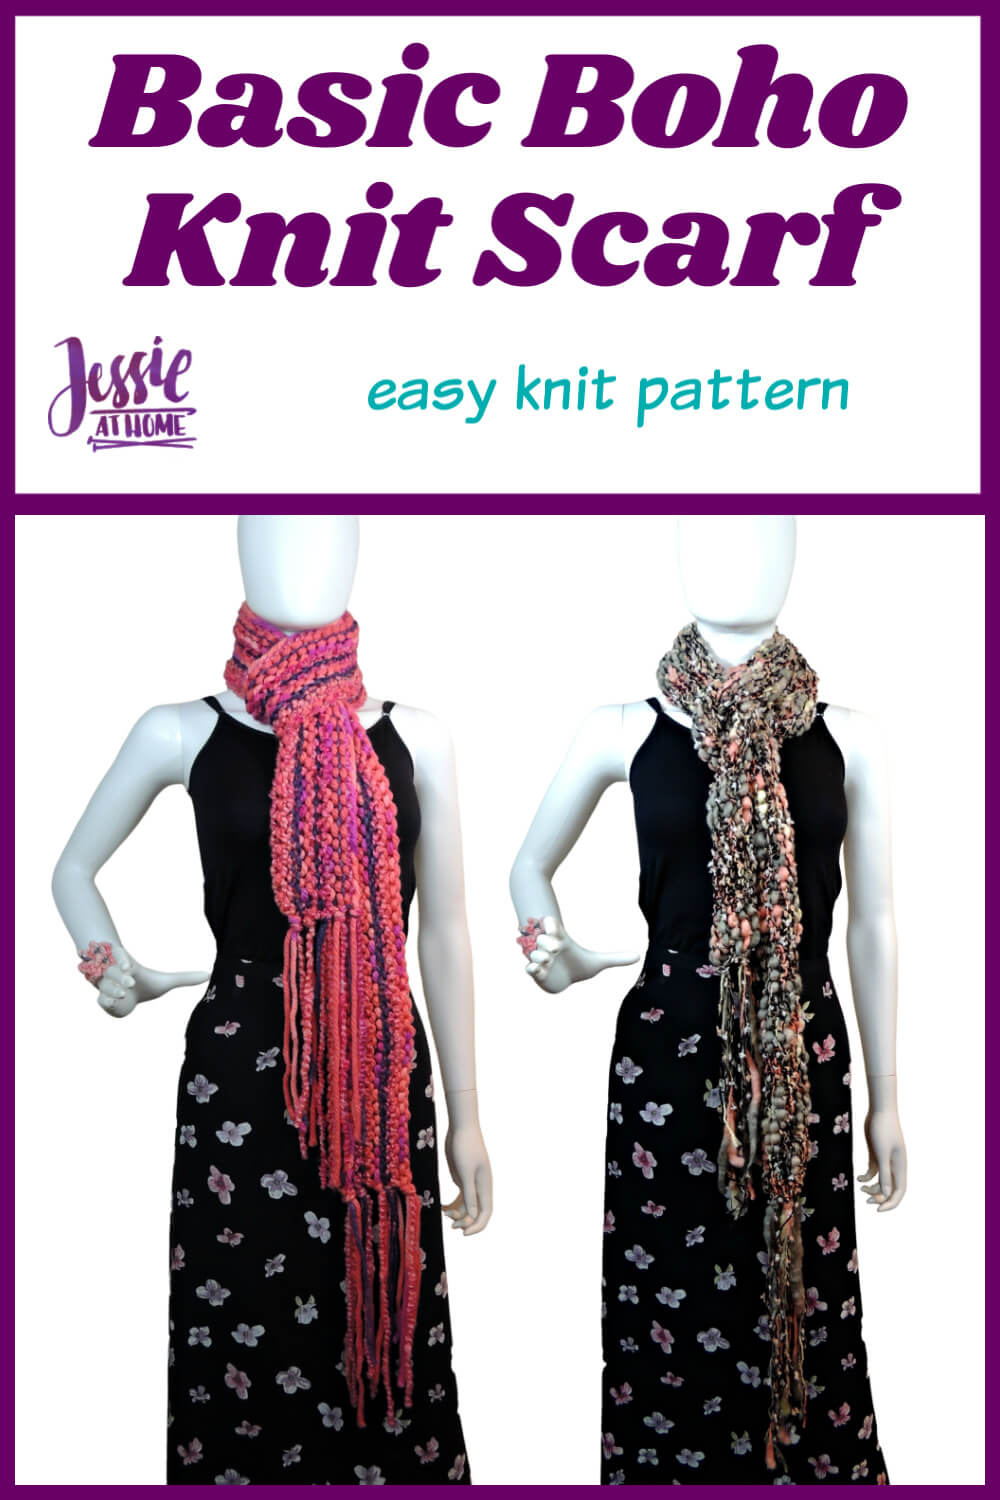 Basic Boho Knit Scarf knit pattern by Jessie At Home - Pin 1